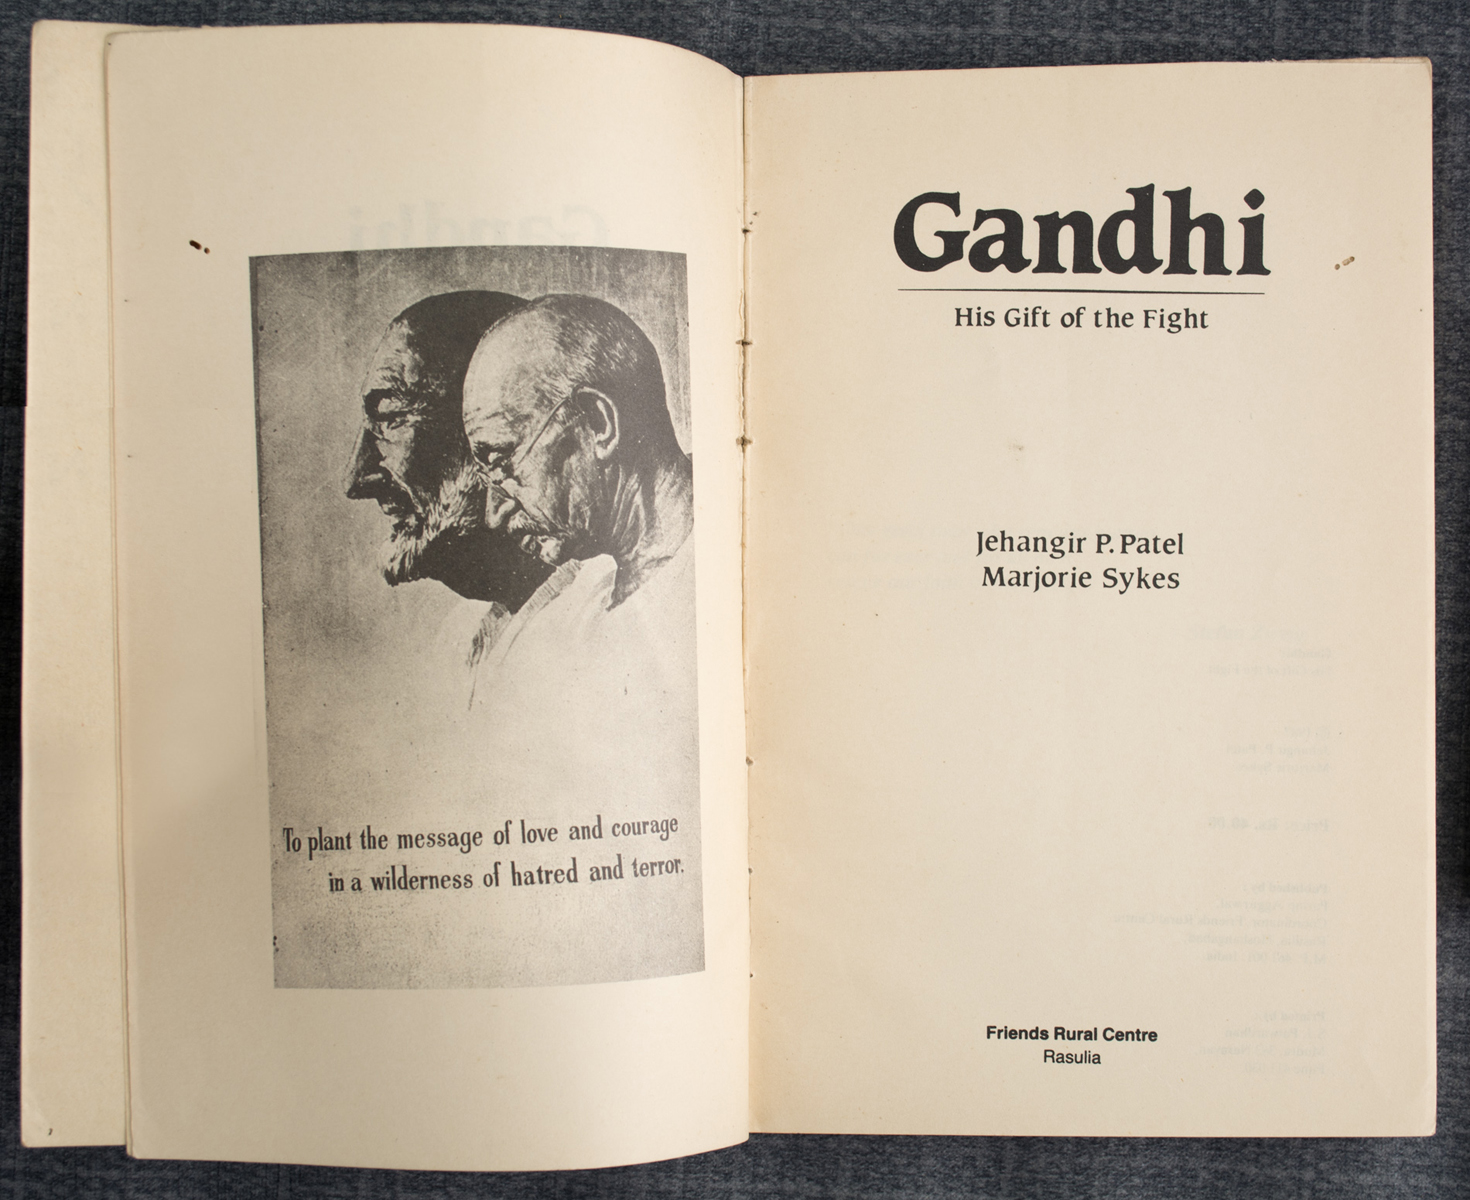 Gandhi: His Gift of the Fight